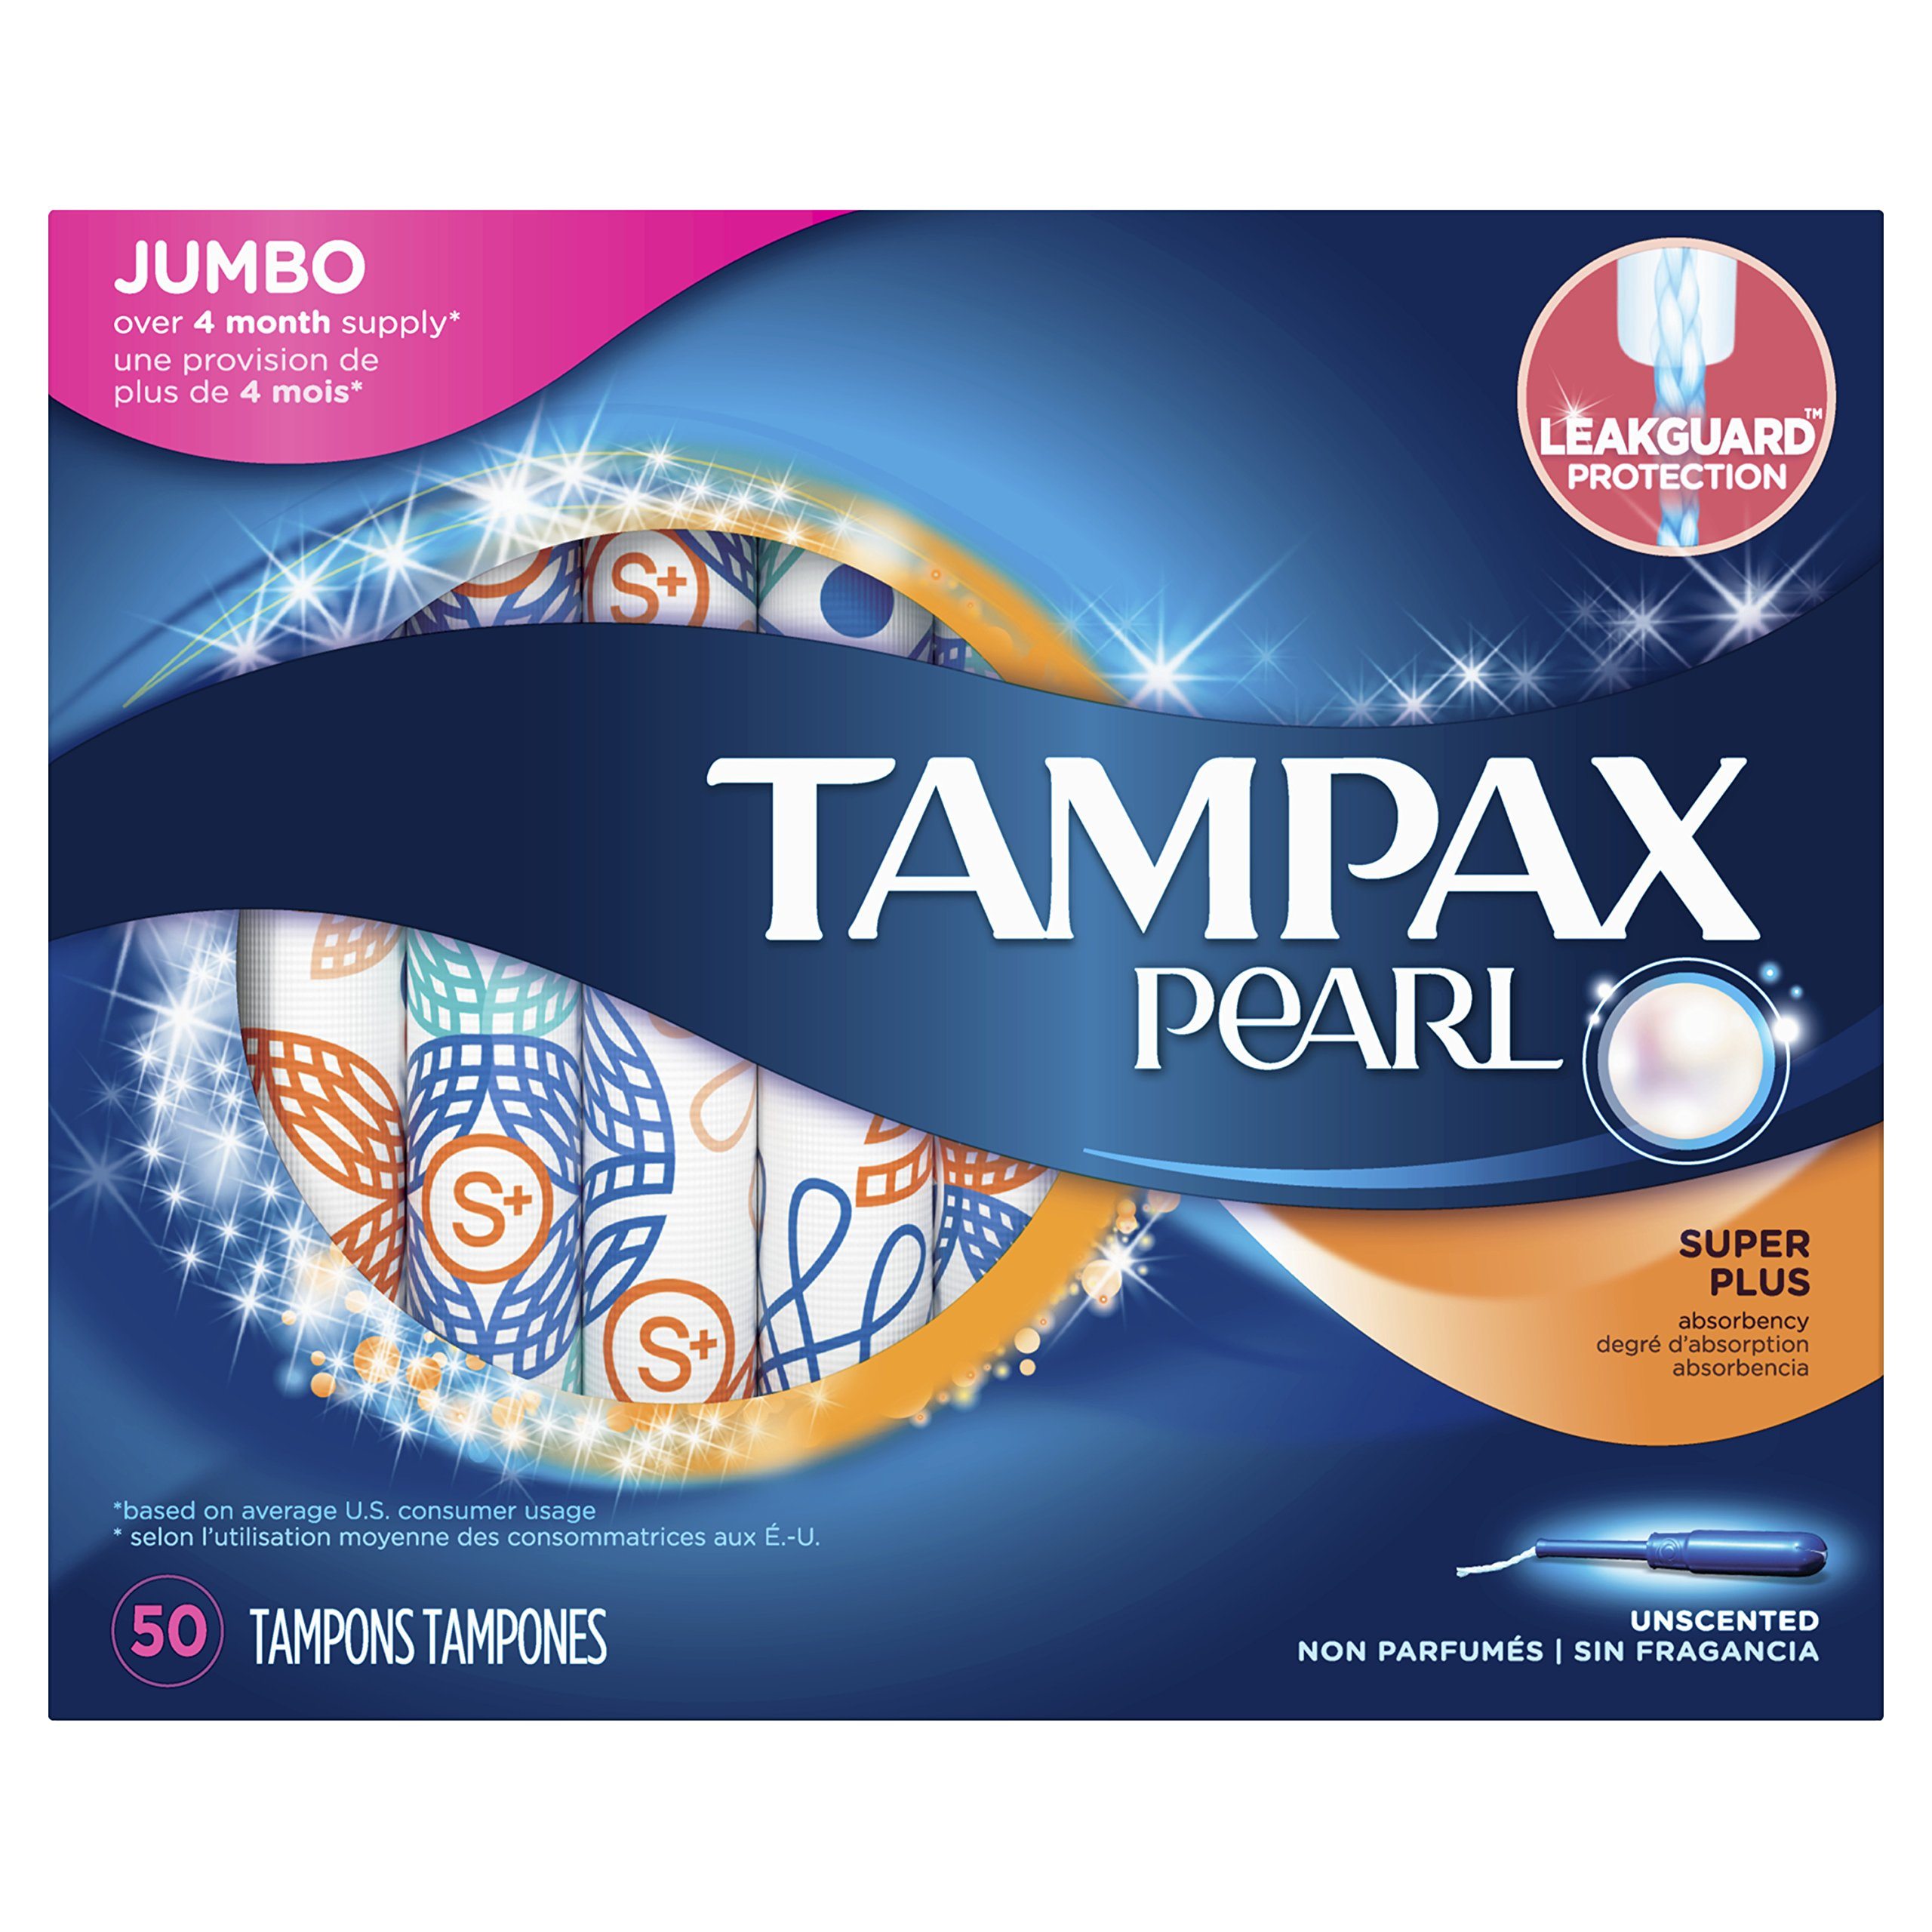 Tampax Pearl Plastic Tampons, Super Plus Absorbency, Unscented, 50 Count